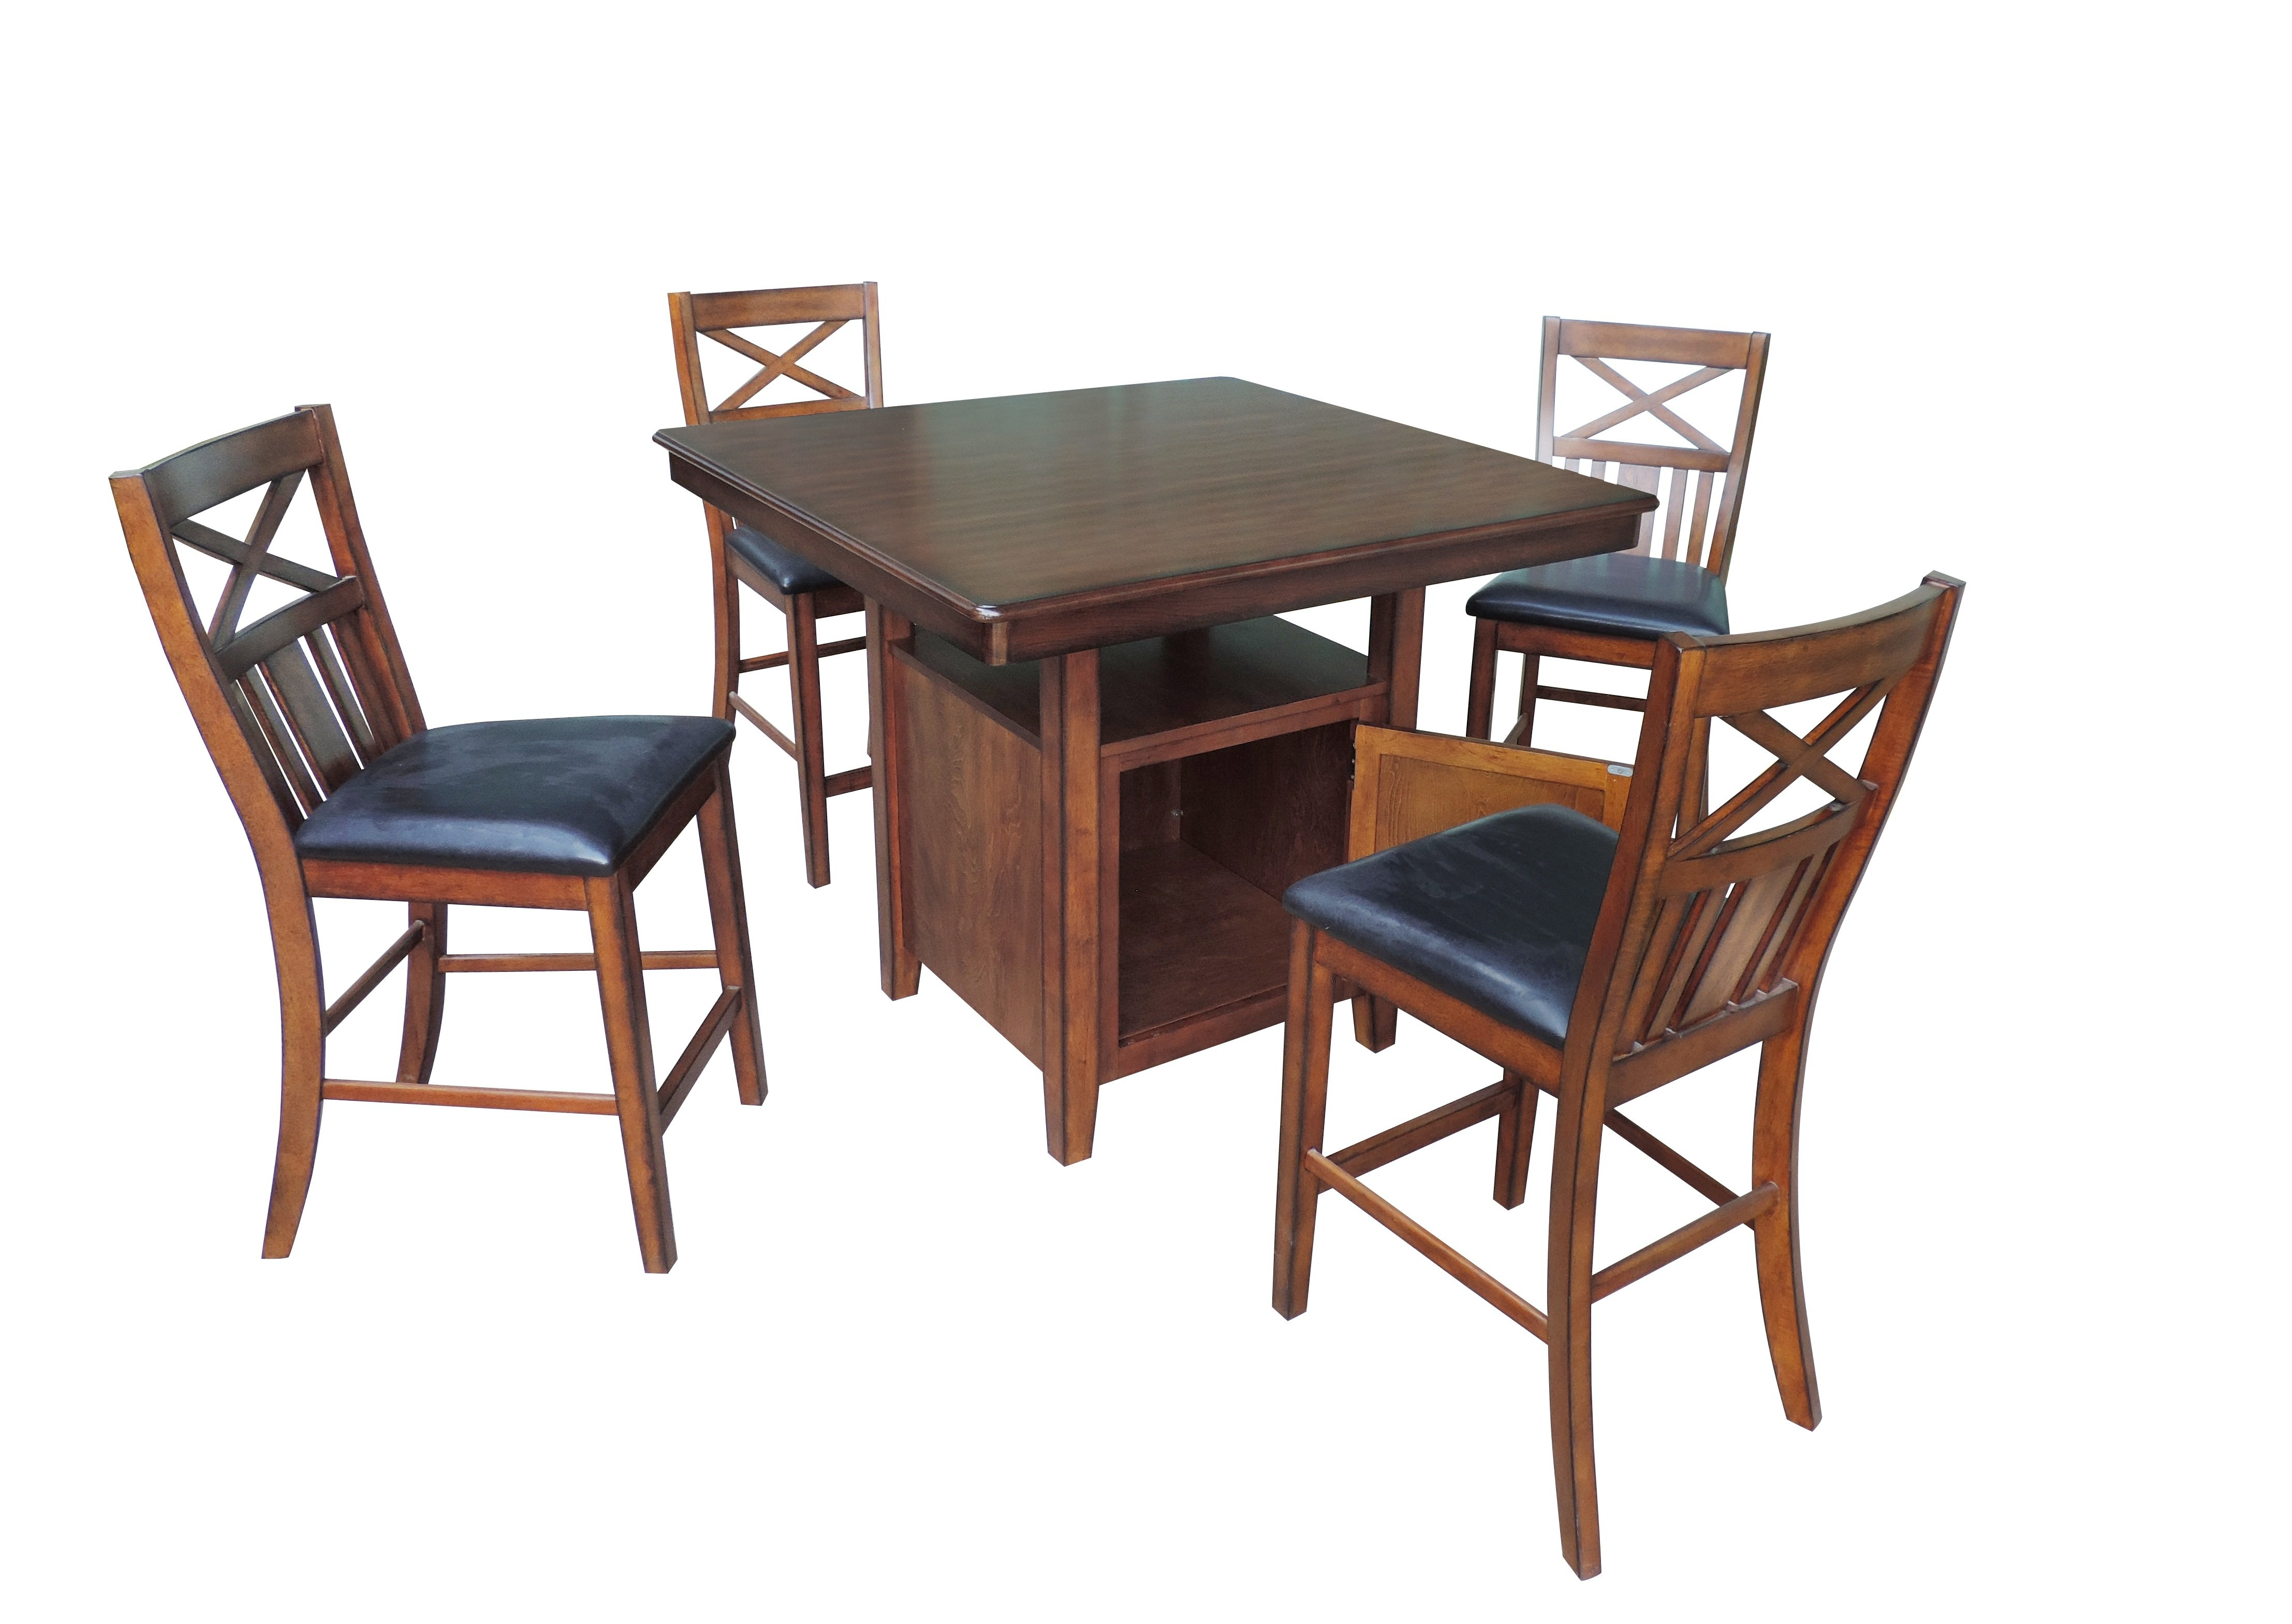 Ephraim 5 Piece Dining Sets Pertaining To Widely Used Nathanielhome 5 Piece Counter Height Dining Set (#8 of 20)